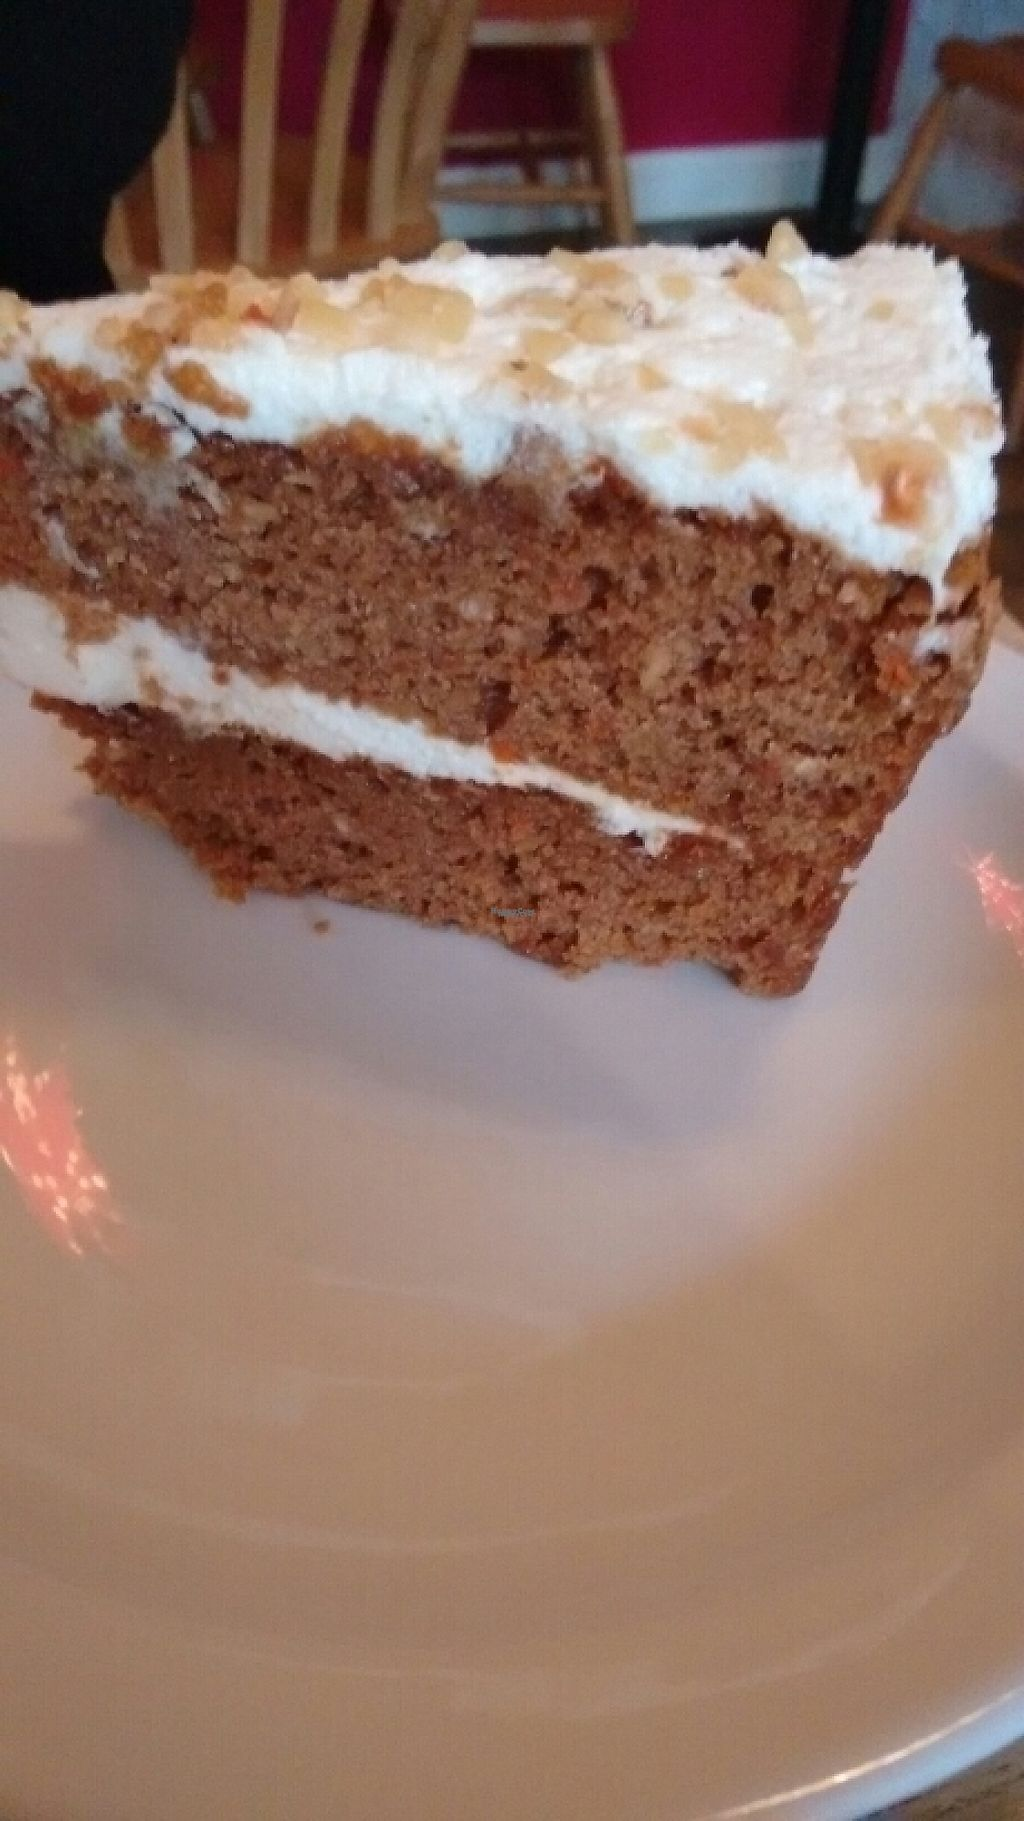 """Photo of Kat's Kitchen  by <a href=""""/members/profile/craigmc"""">craigmc</a> <br/>veggie carrot cake <br/> December 30, 2016  - <a href='/contact/abuse/image/79734/206202'>Report</a>"""